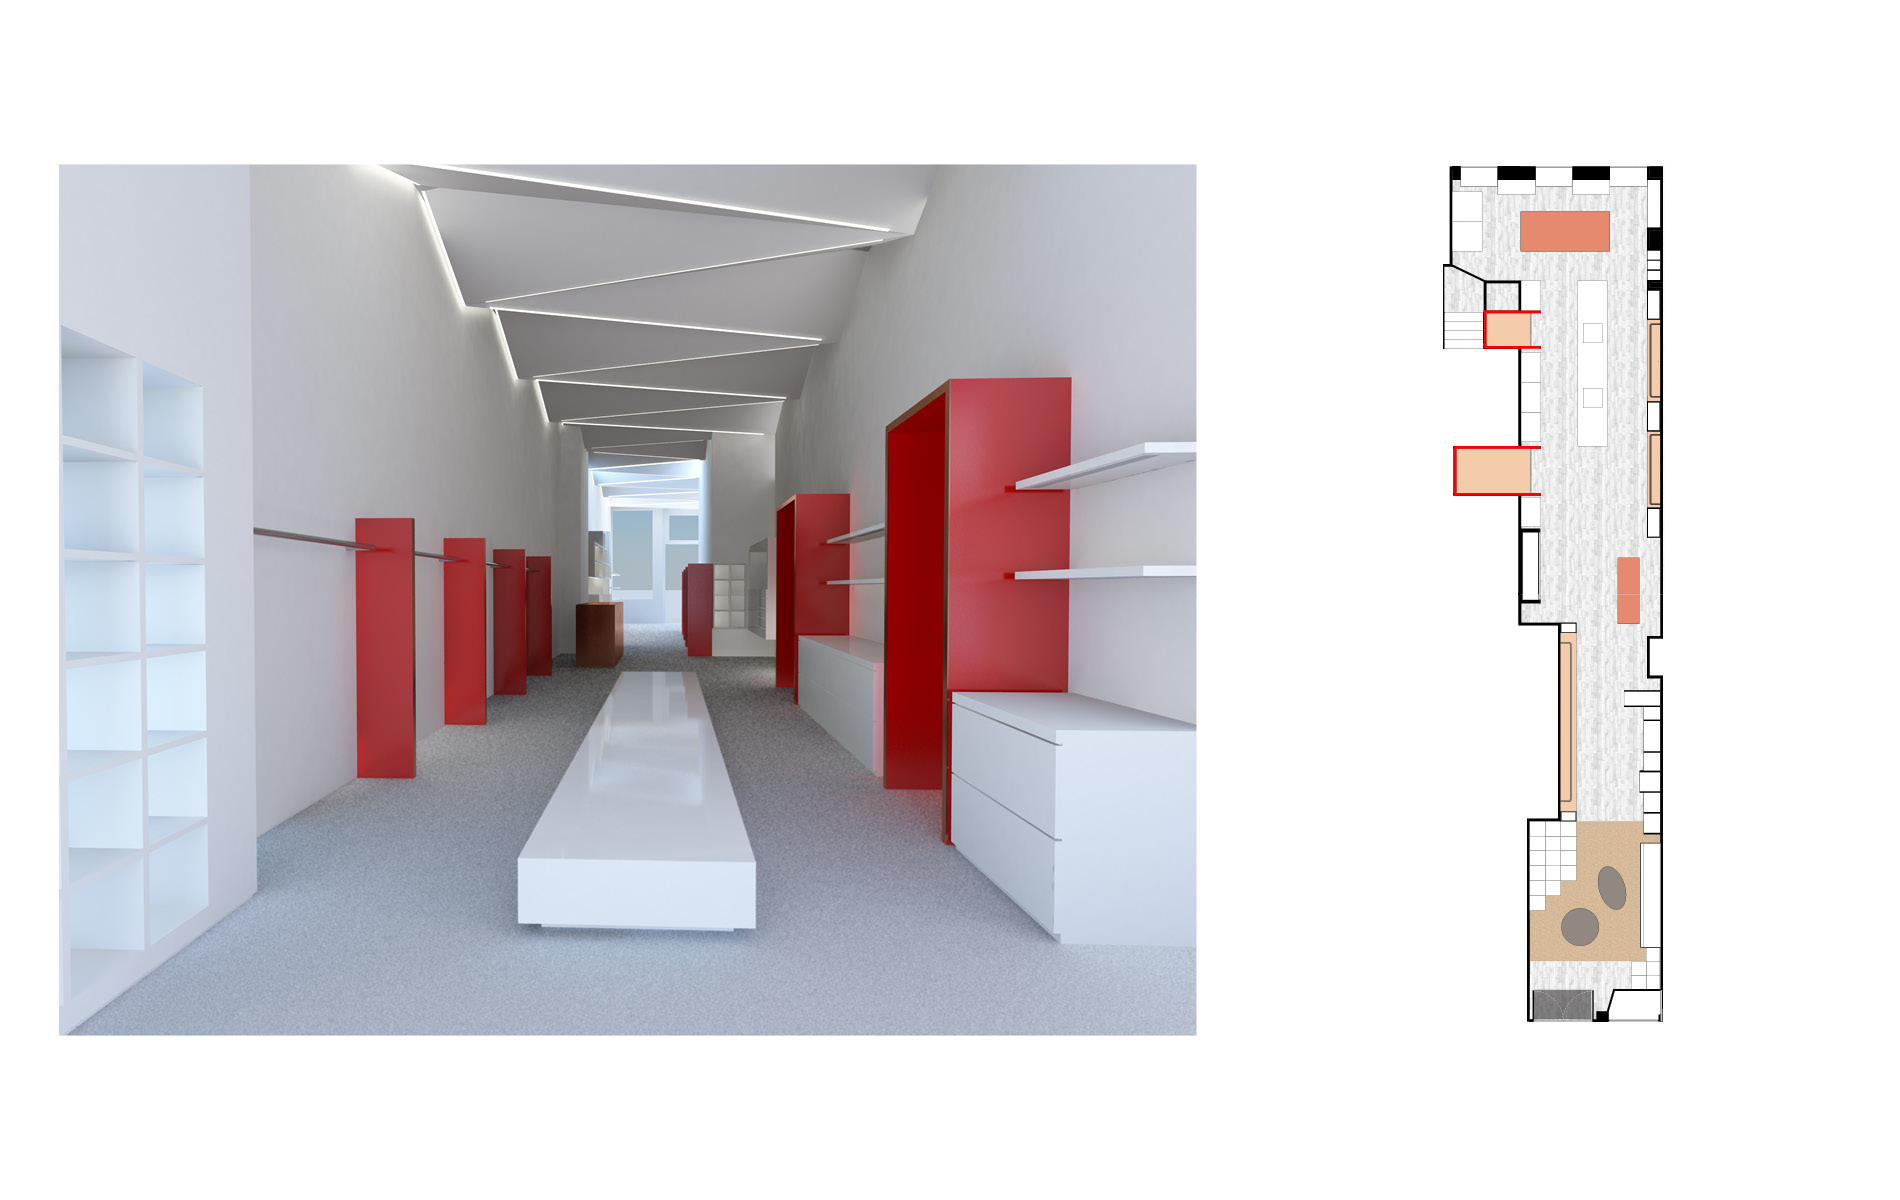 Showroom design as brand experience by DTE for client